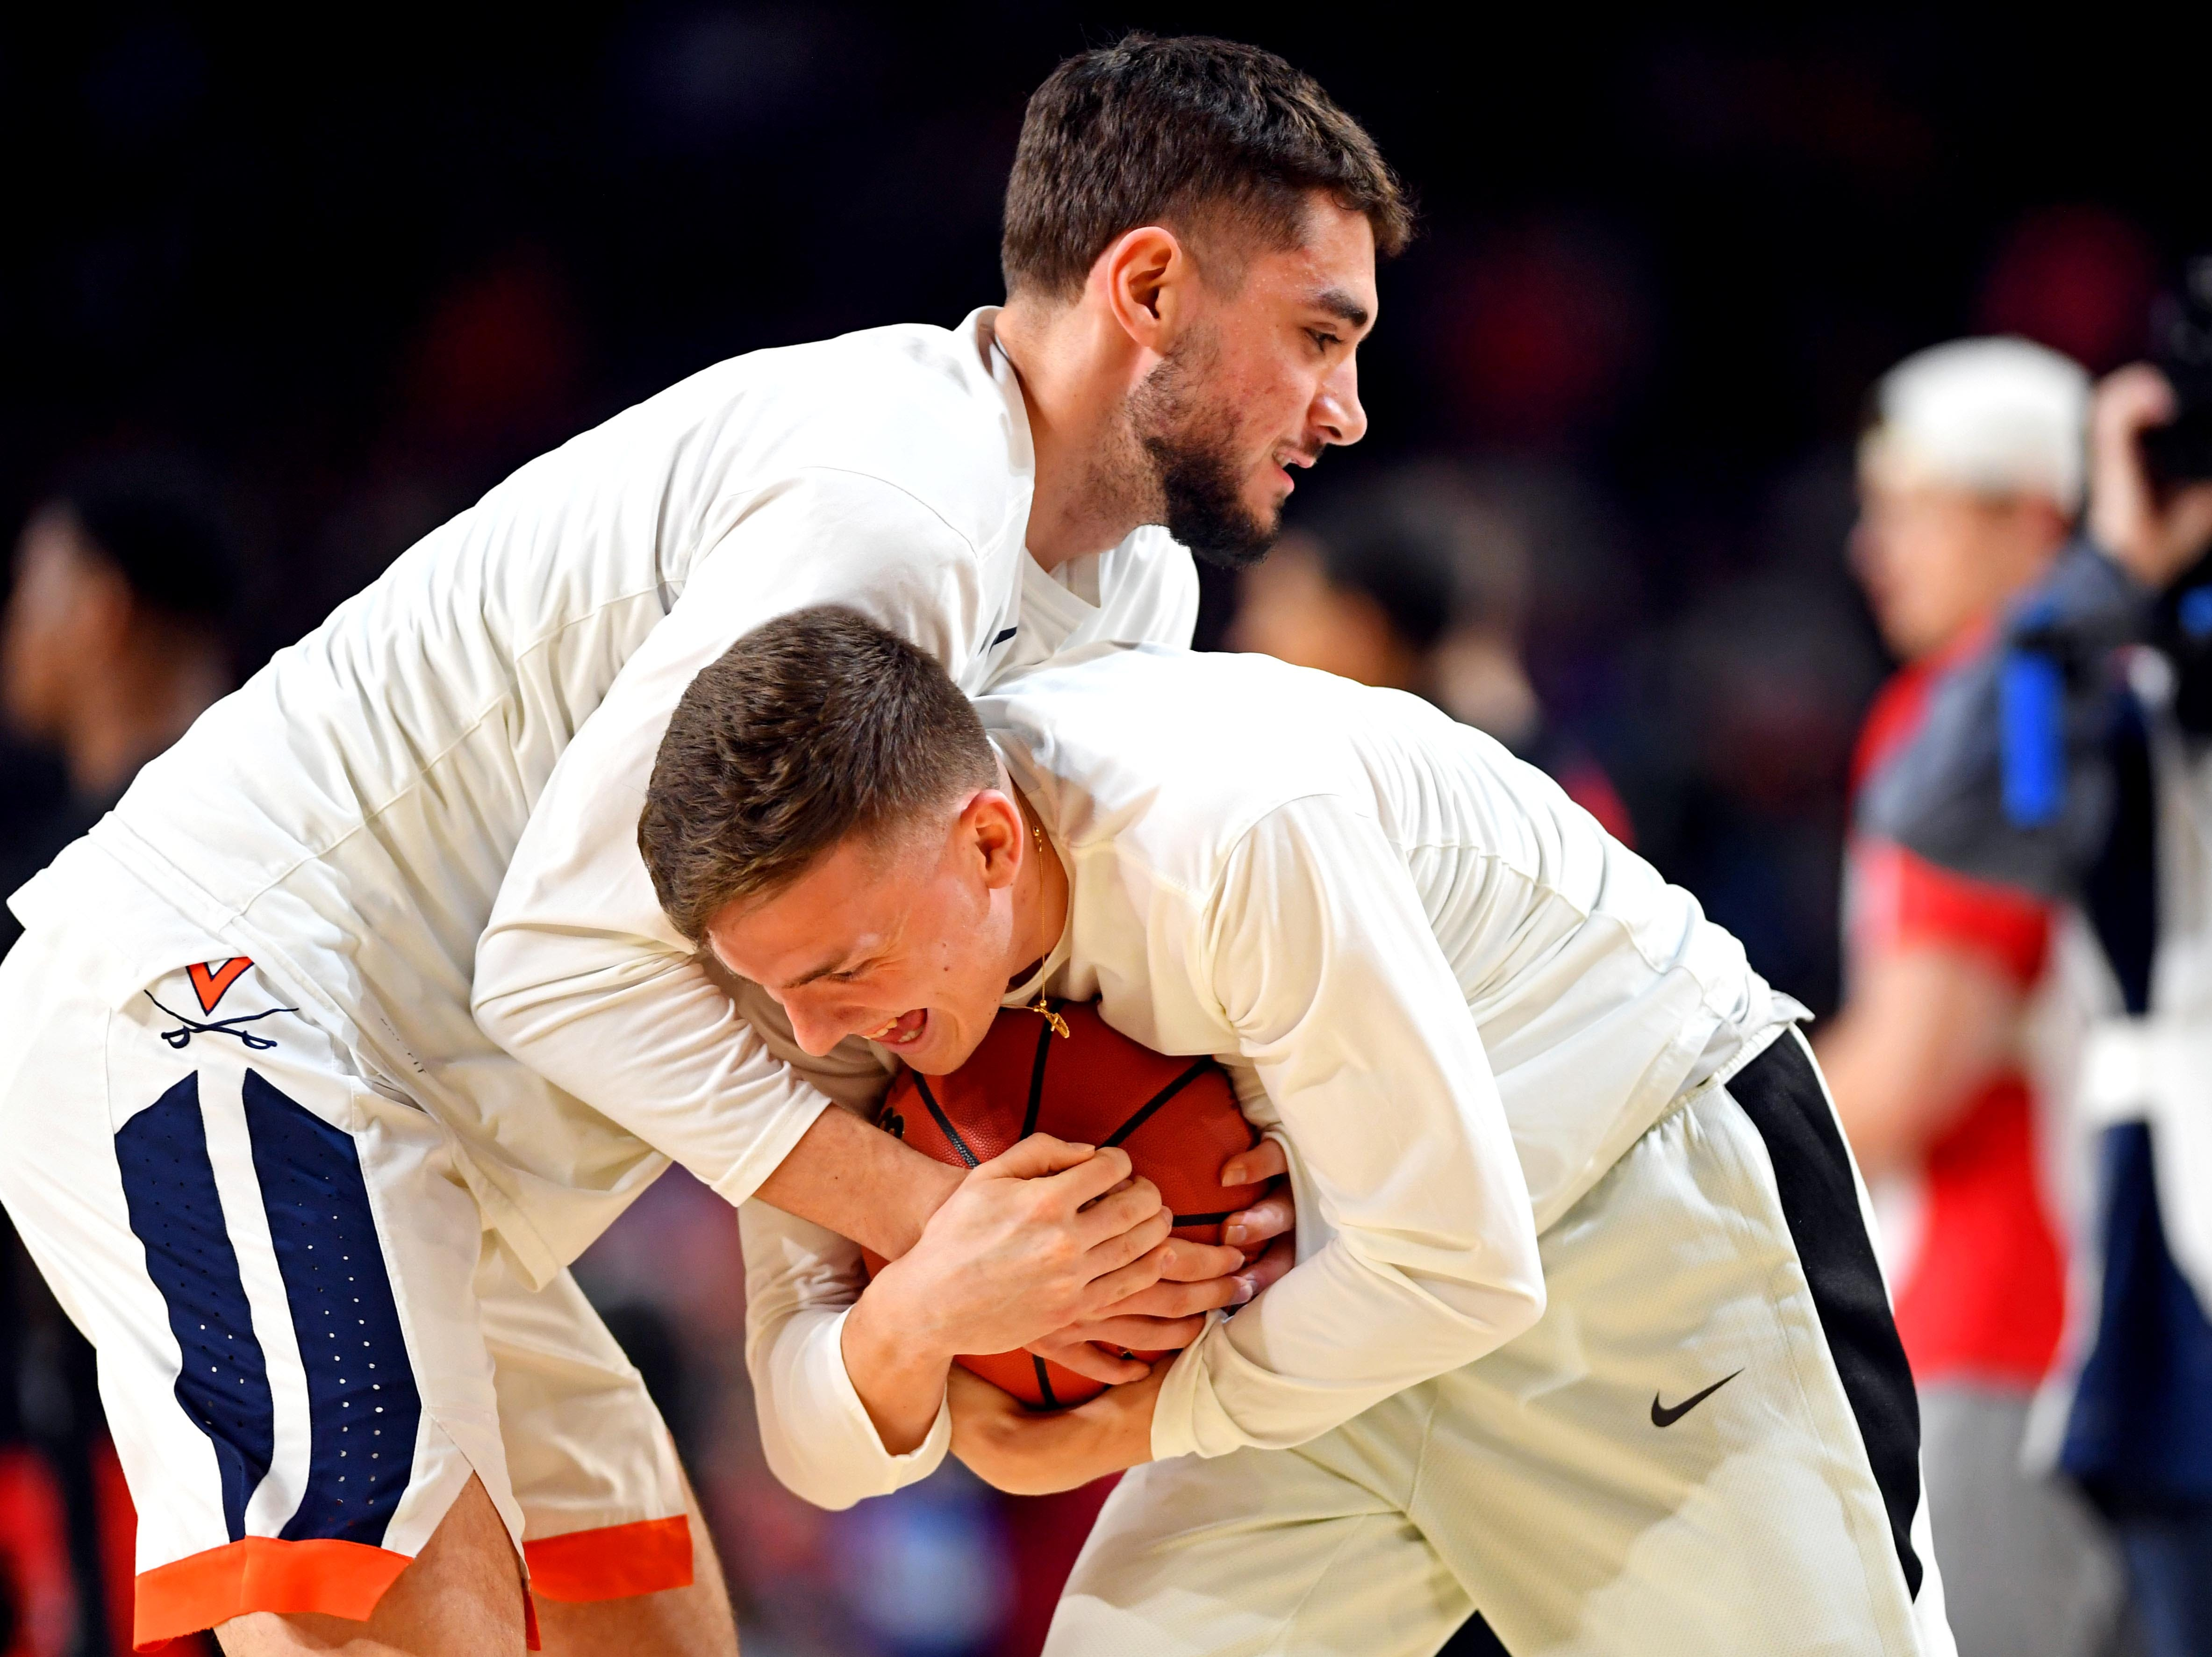 Apr 8, 2019; Minneapolis, MN, USA; Virginia Cavaliers guard Ty Jerome (11) and guard Kyle Guy (5) warms up before the game against the Texas Tech Red Raiders in the championship game of the 2019 men's Final Four at US Bank Stadium. Mandatory Credit: Bob Donnan-USA TODAY Sports